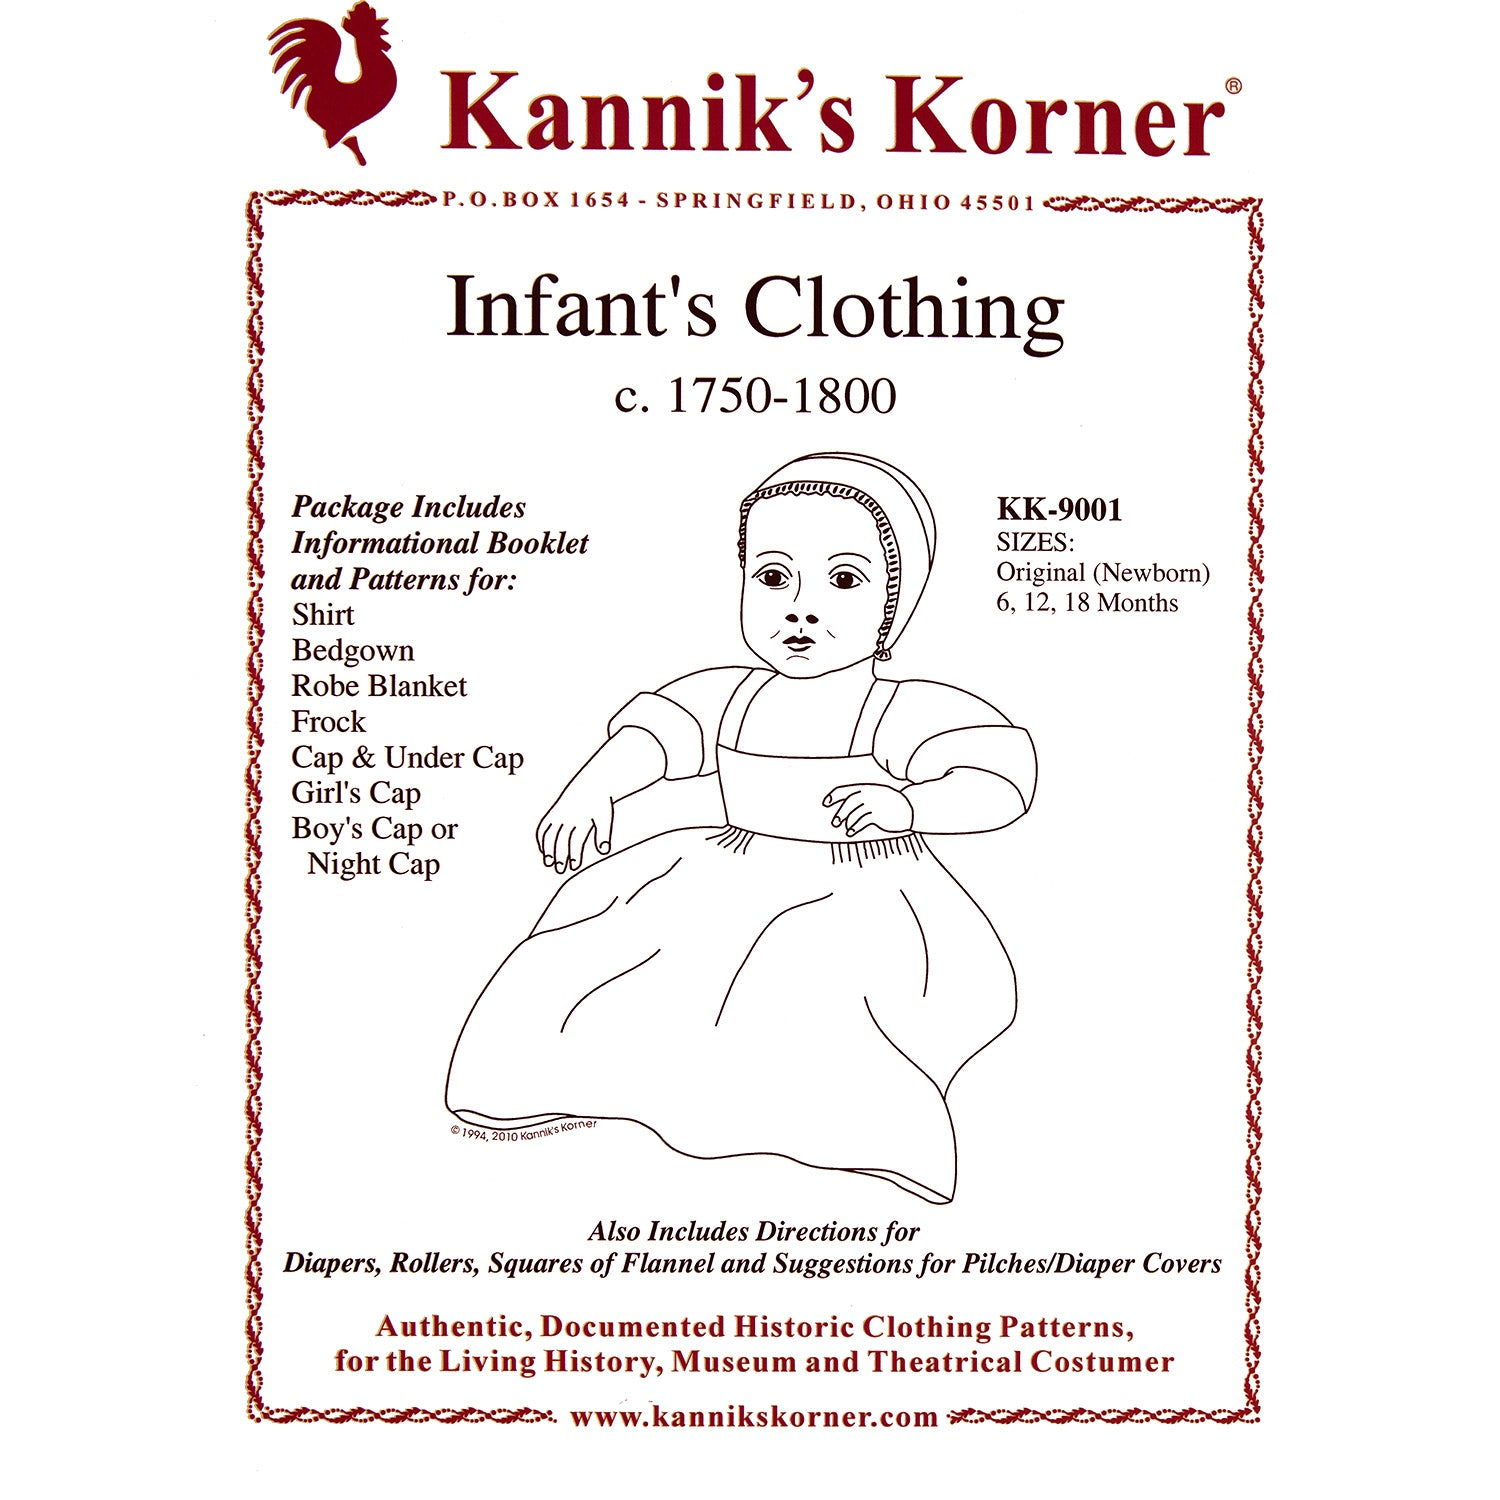 Kannik's Korner 18th Century Infant Wear Pattern